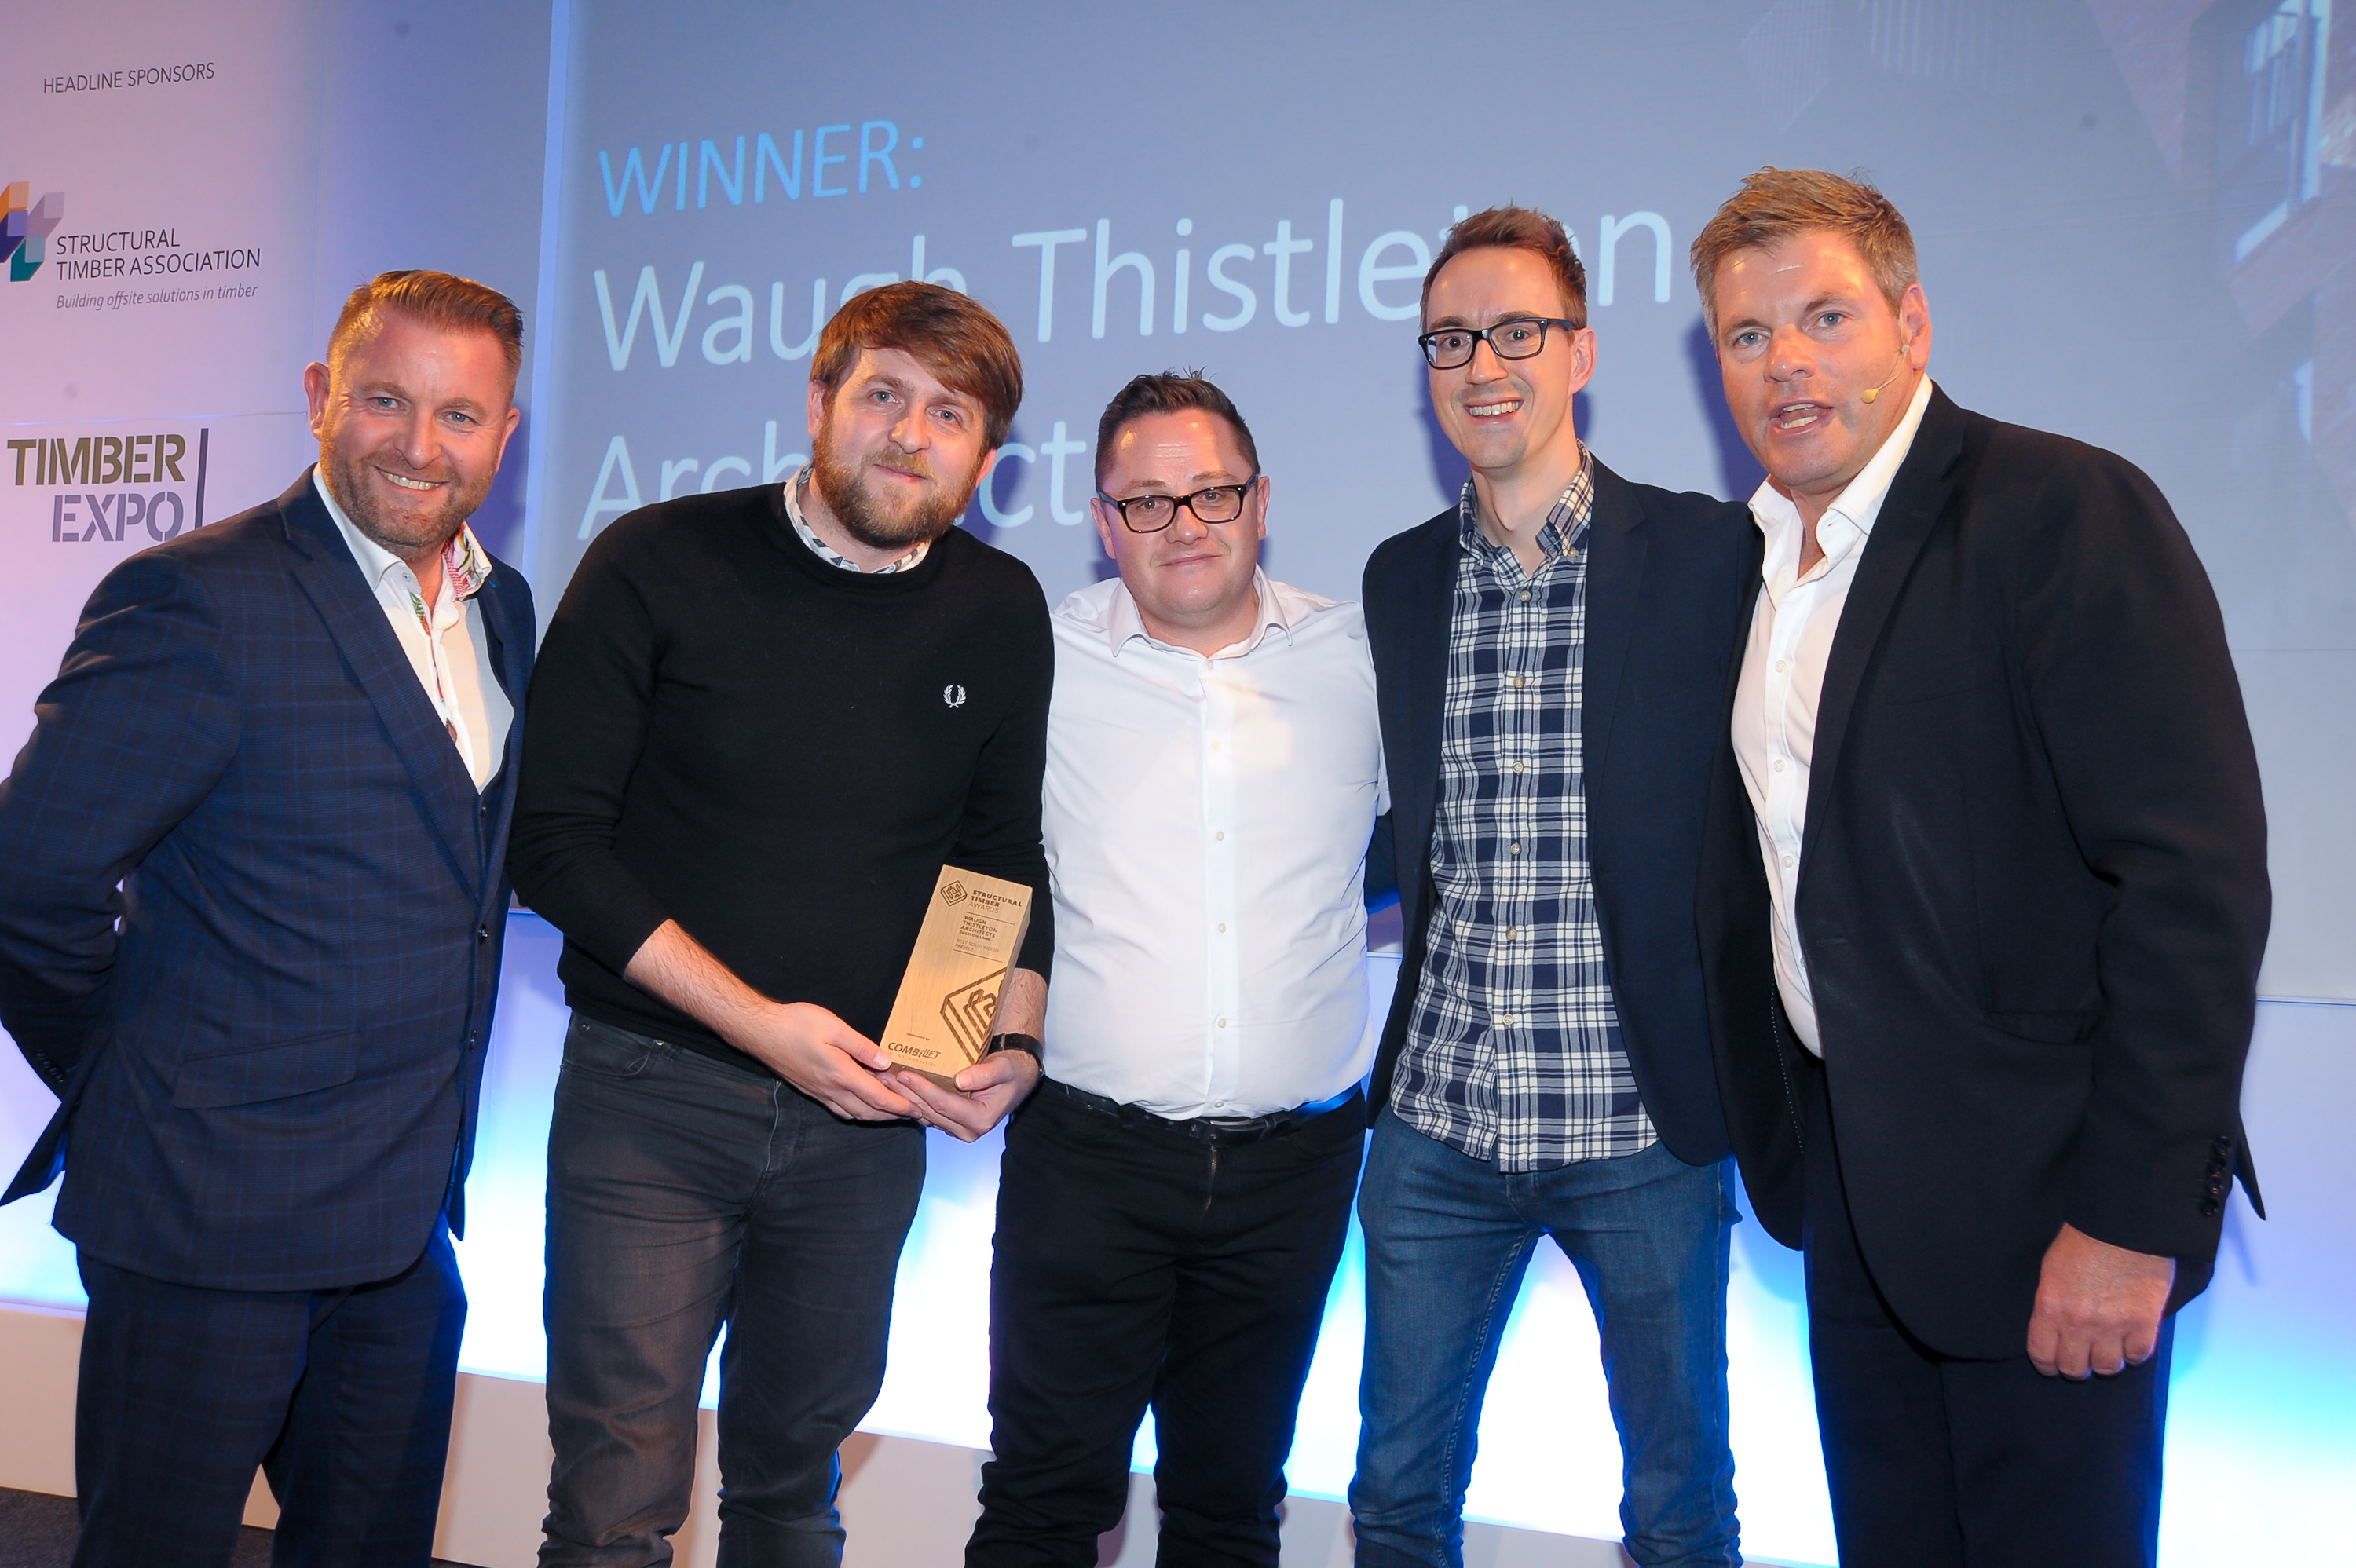 sta_awards_11.10.17___185_of_229_